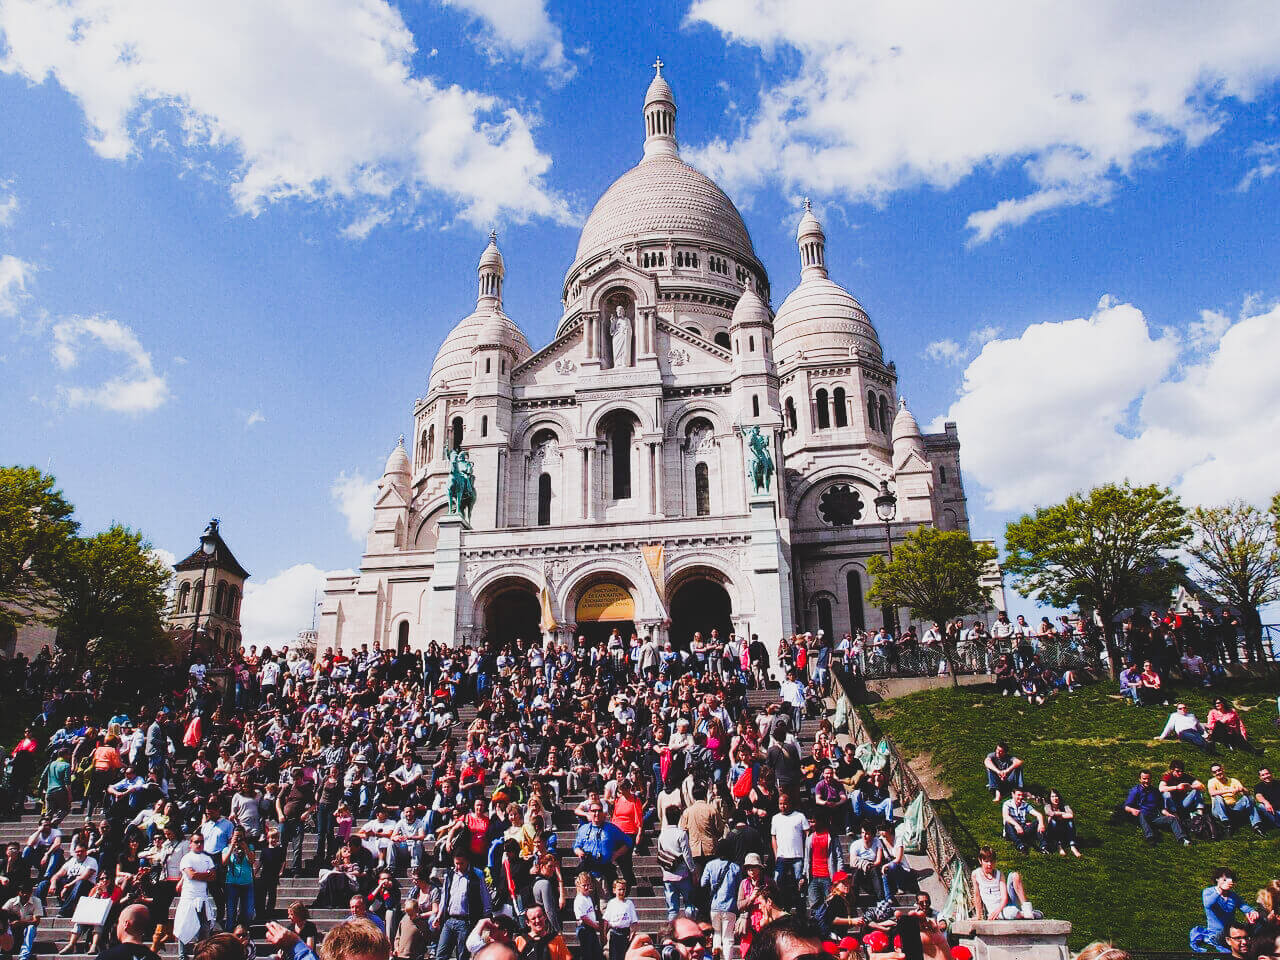 Crowds at Sacre Coeur Basilica in Montmartre, Paris, France